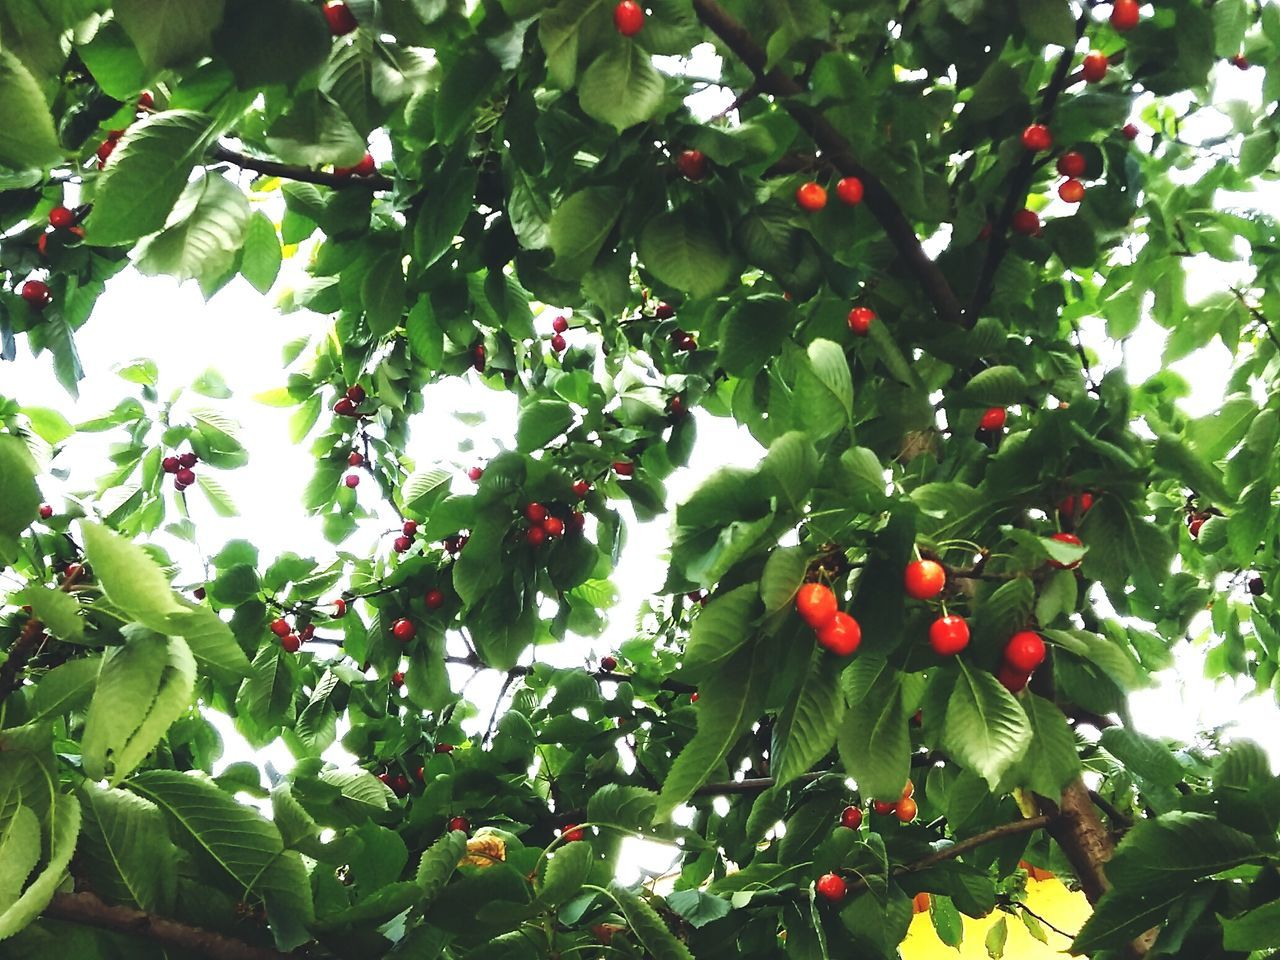 fruit, growth, tree, food and drink, red, green color, food, nature, healthy eating, outdoors, day, rowanberry, freshness, leaf, low angle view, branch, no people, beauty in nature, close-up